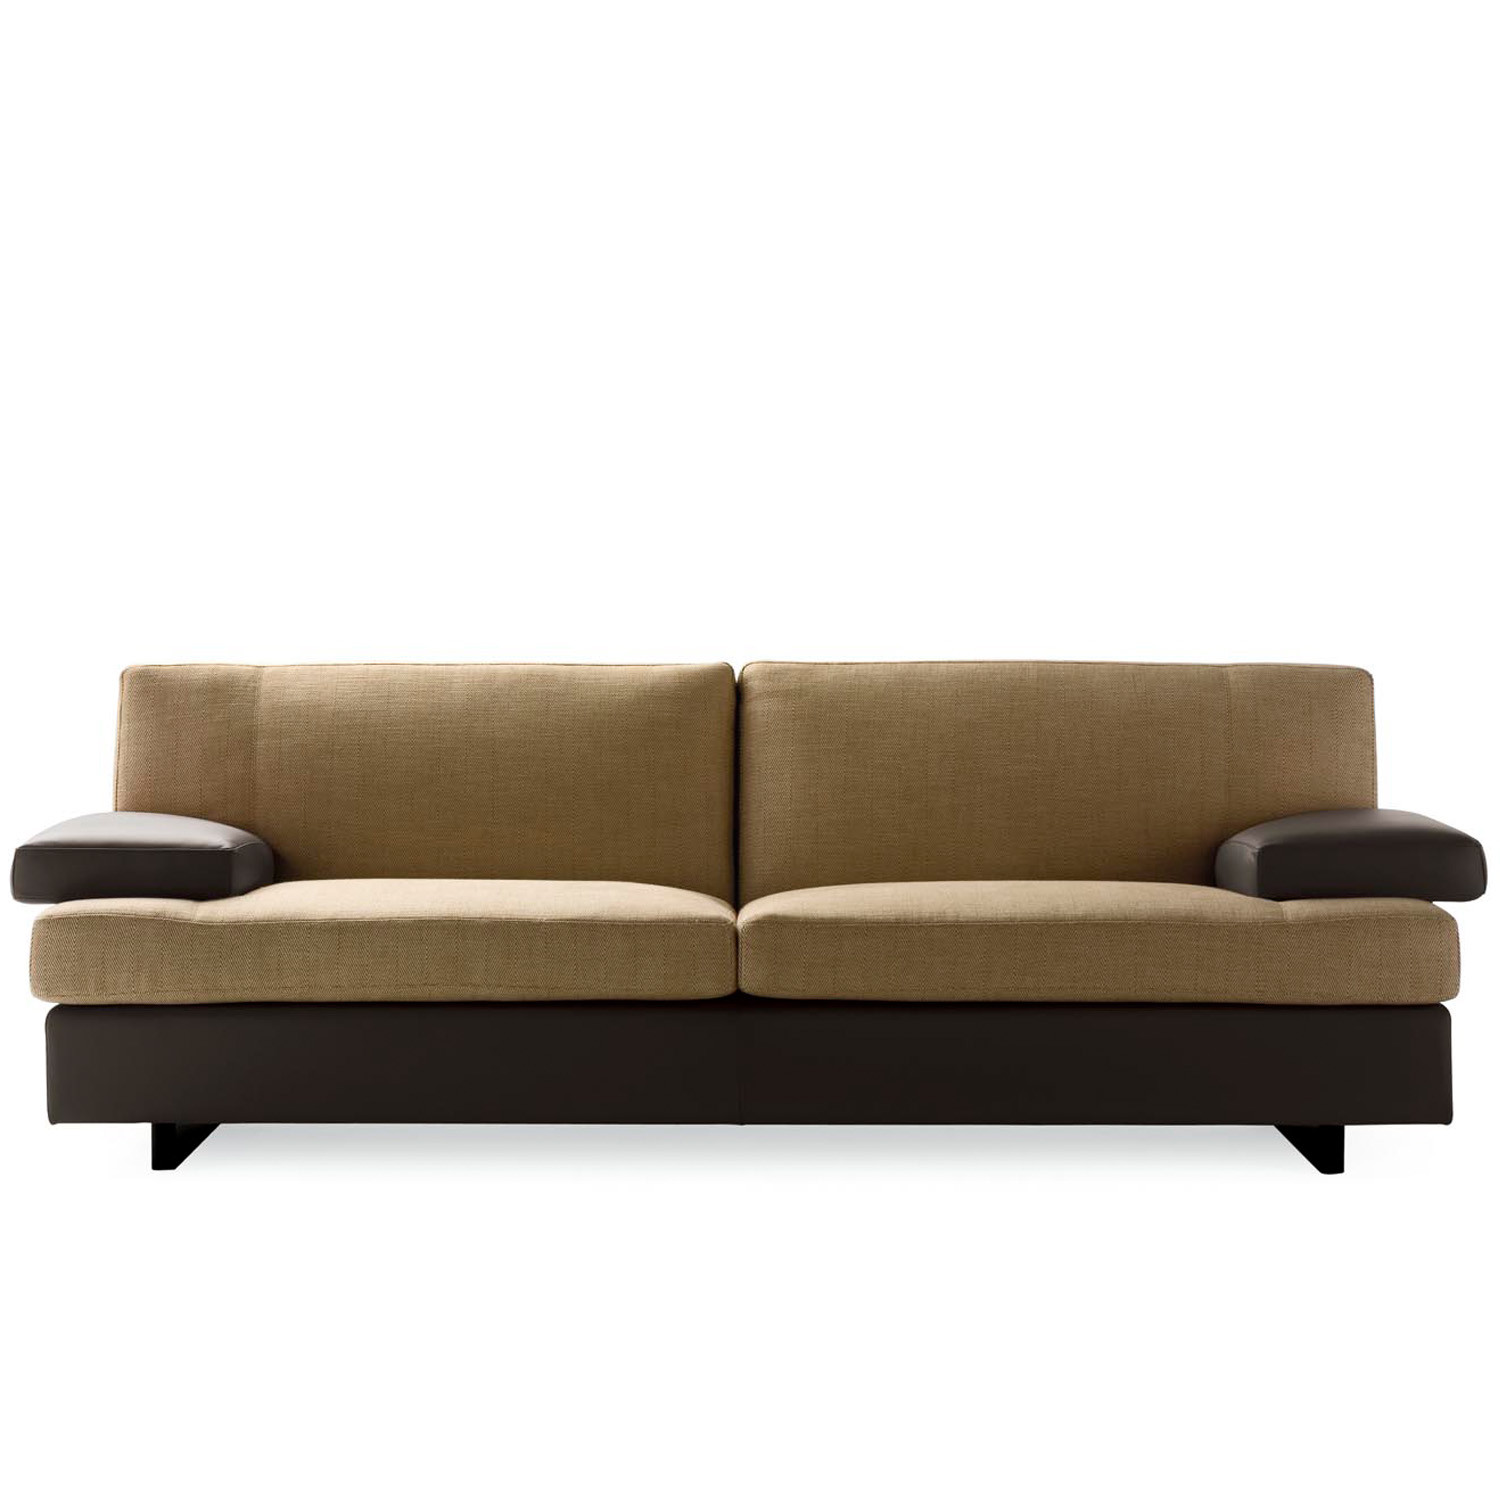 Eskilo Sofa in Fabric and Leather